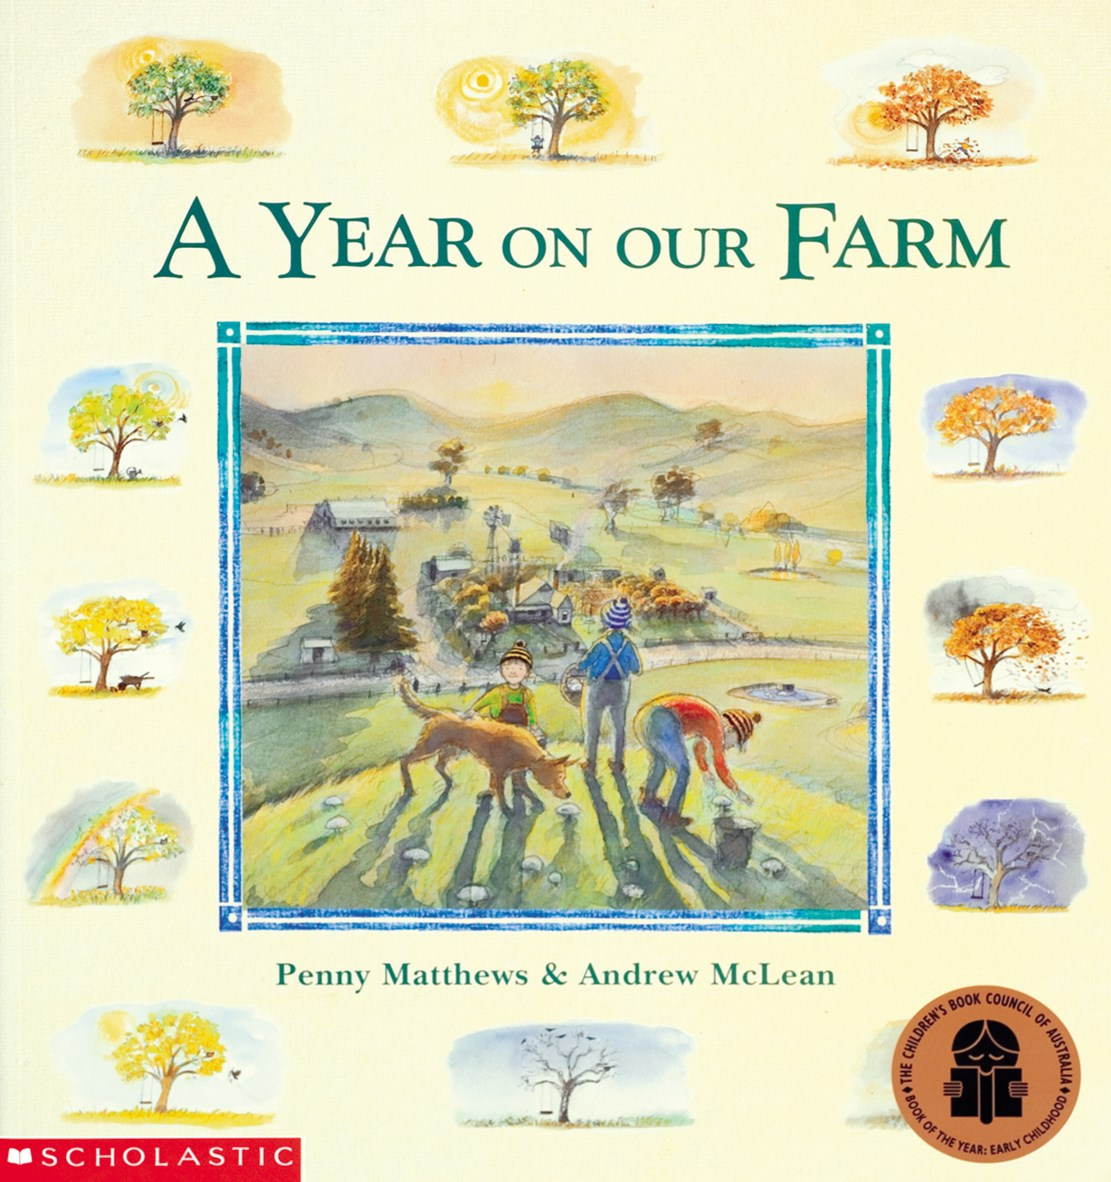 Year on our Farm